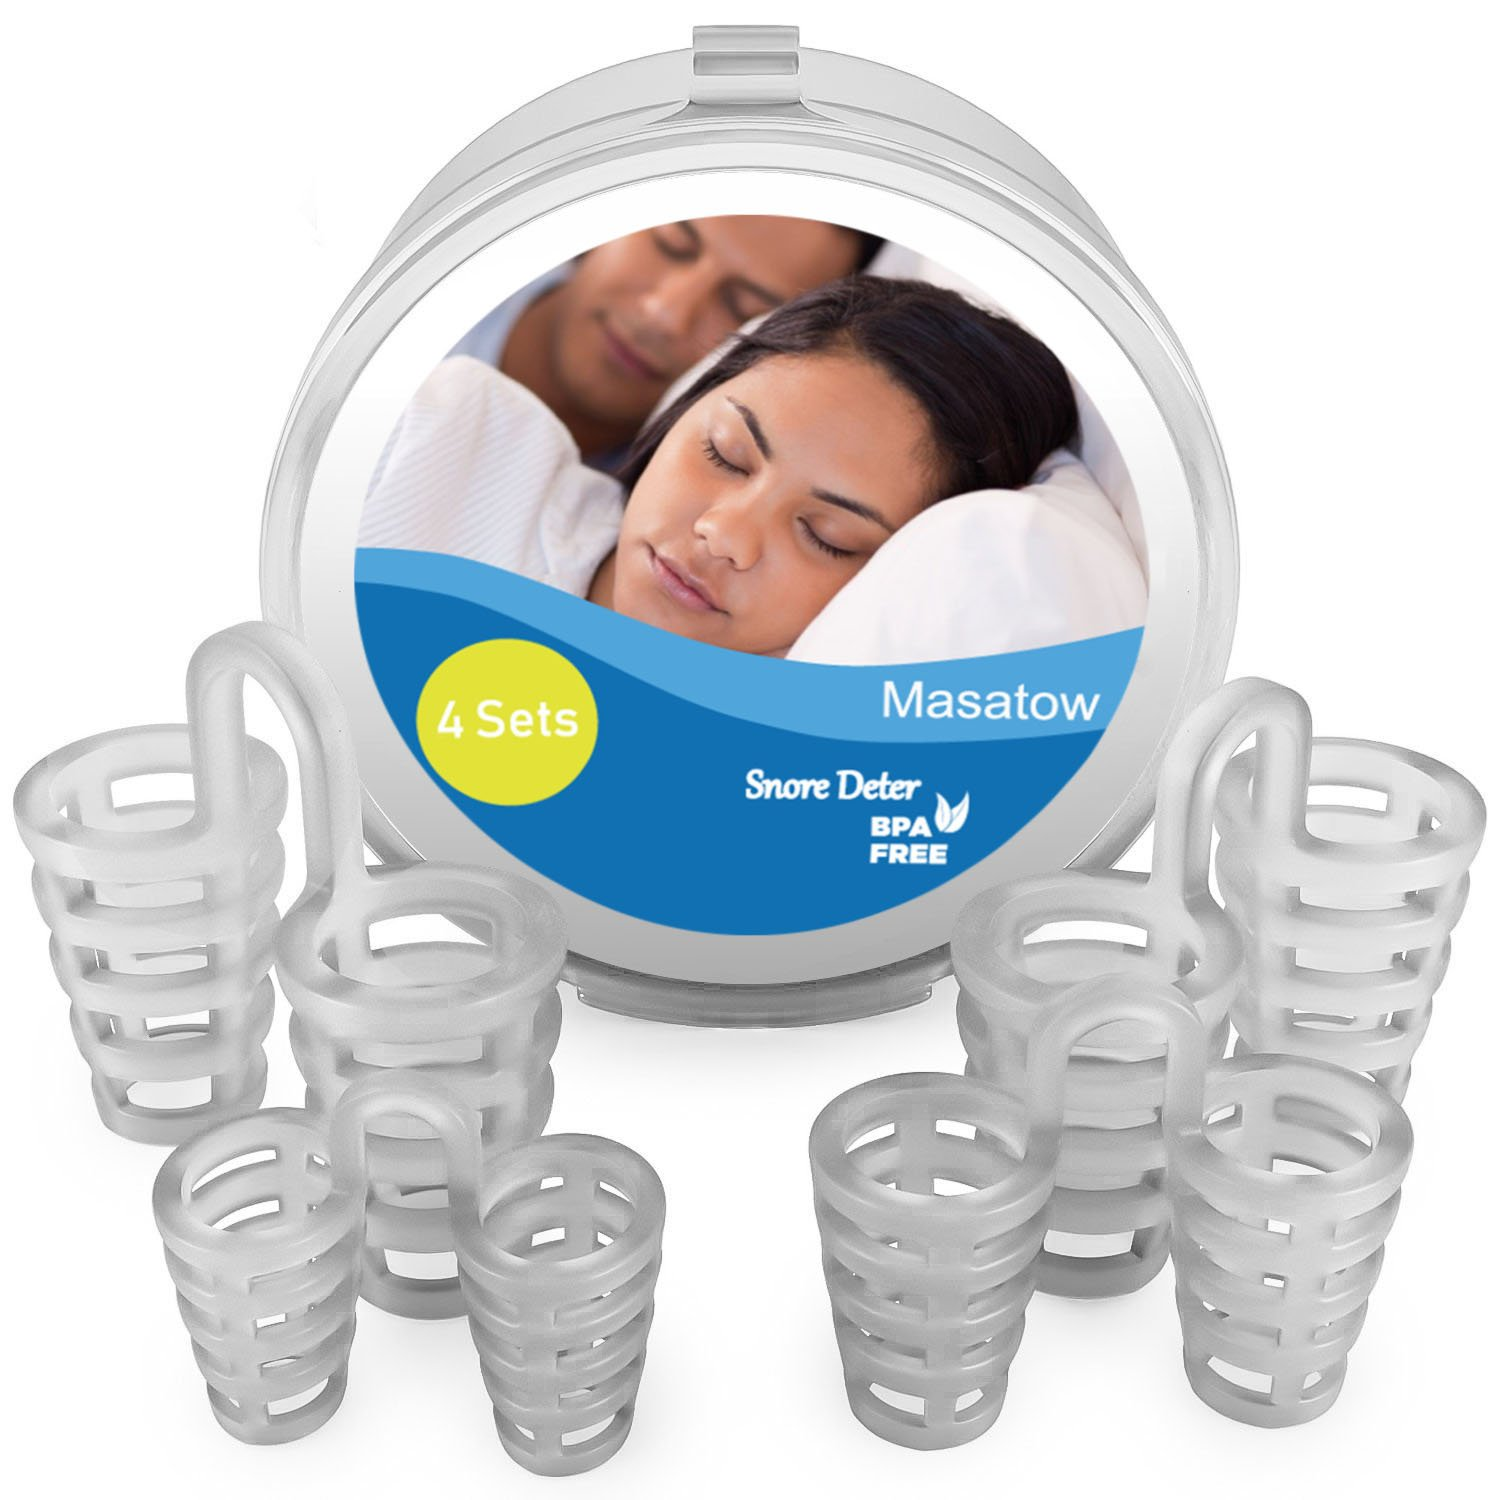 Snore Stopper,Masatow Anti Snoring Solution Stop Snore Nose Vents Sleep Aid Device for Snoring and Natural Breathing